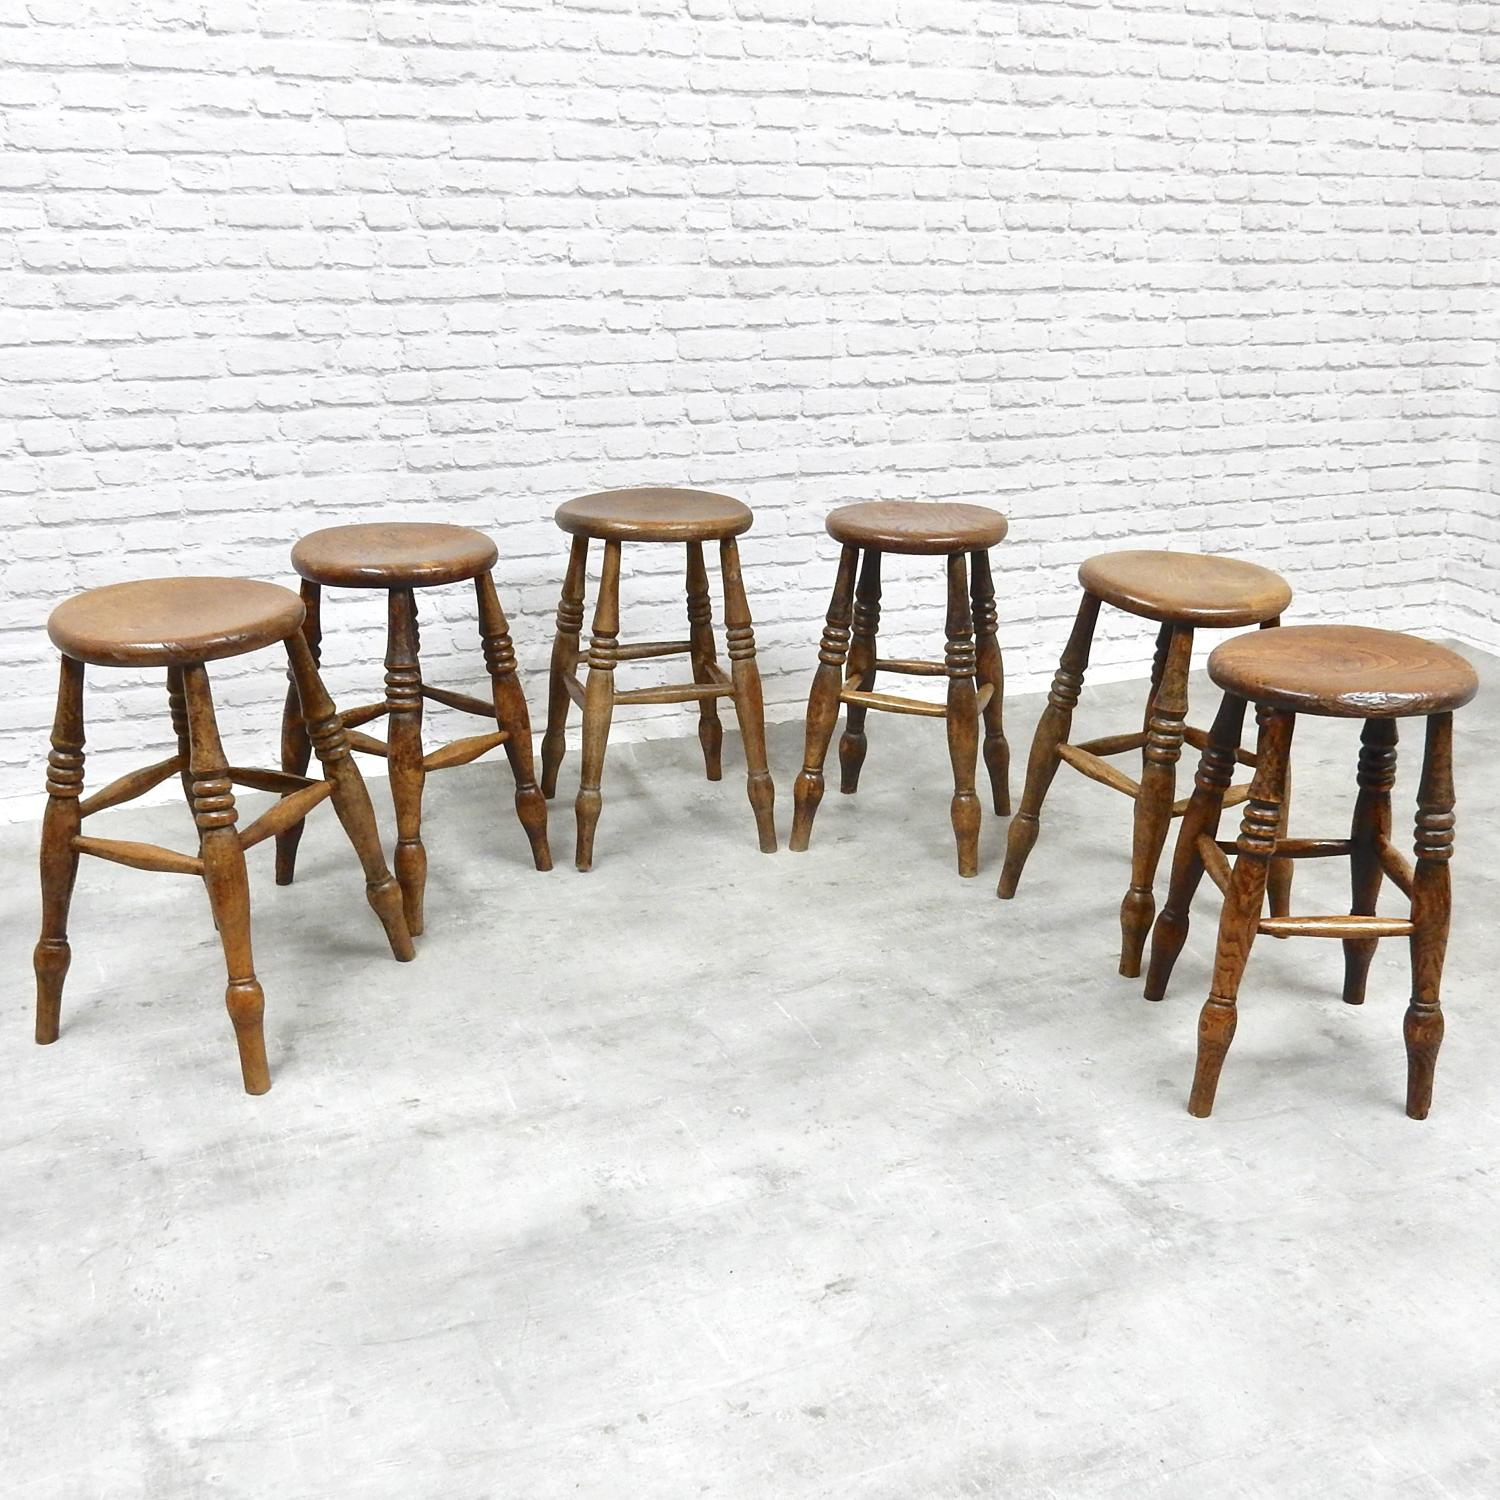 6x Antique Pub Stools